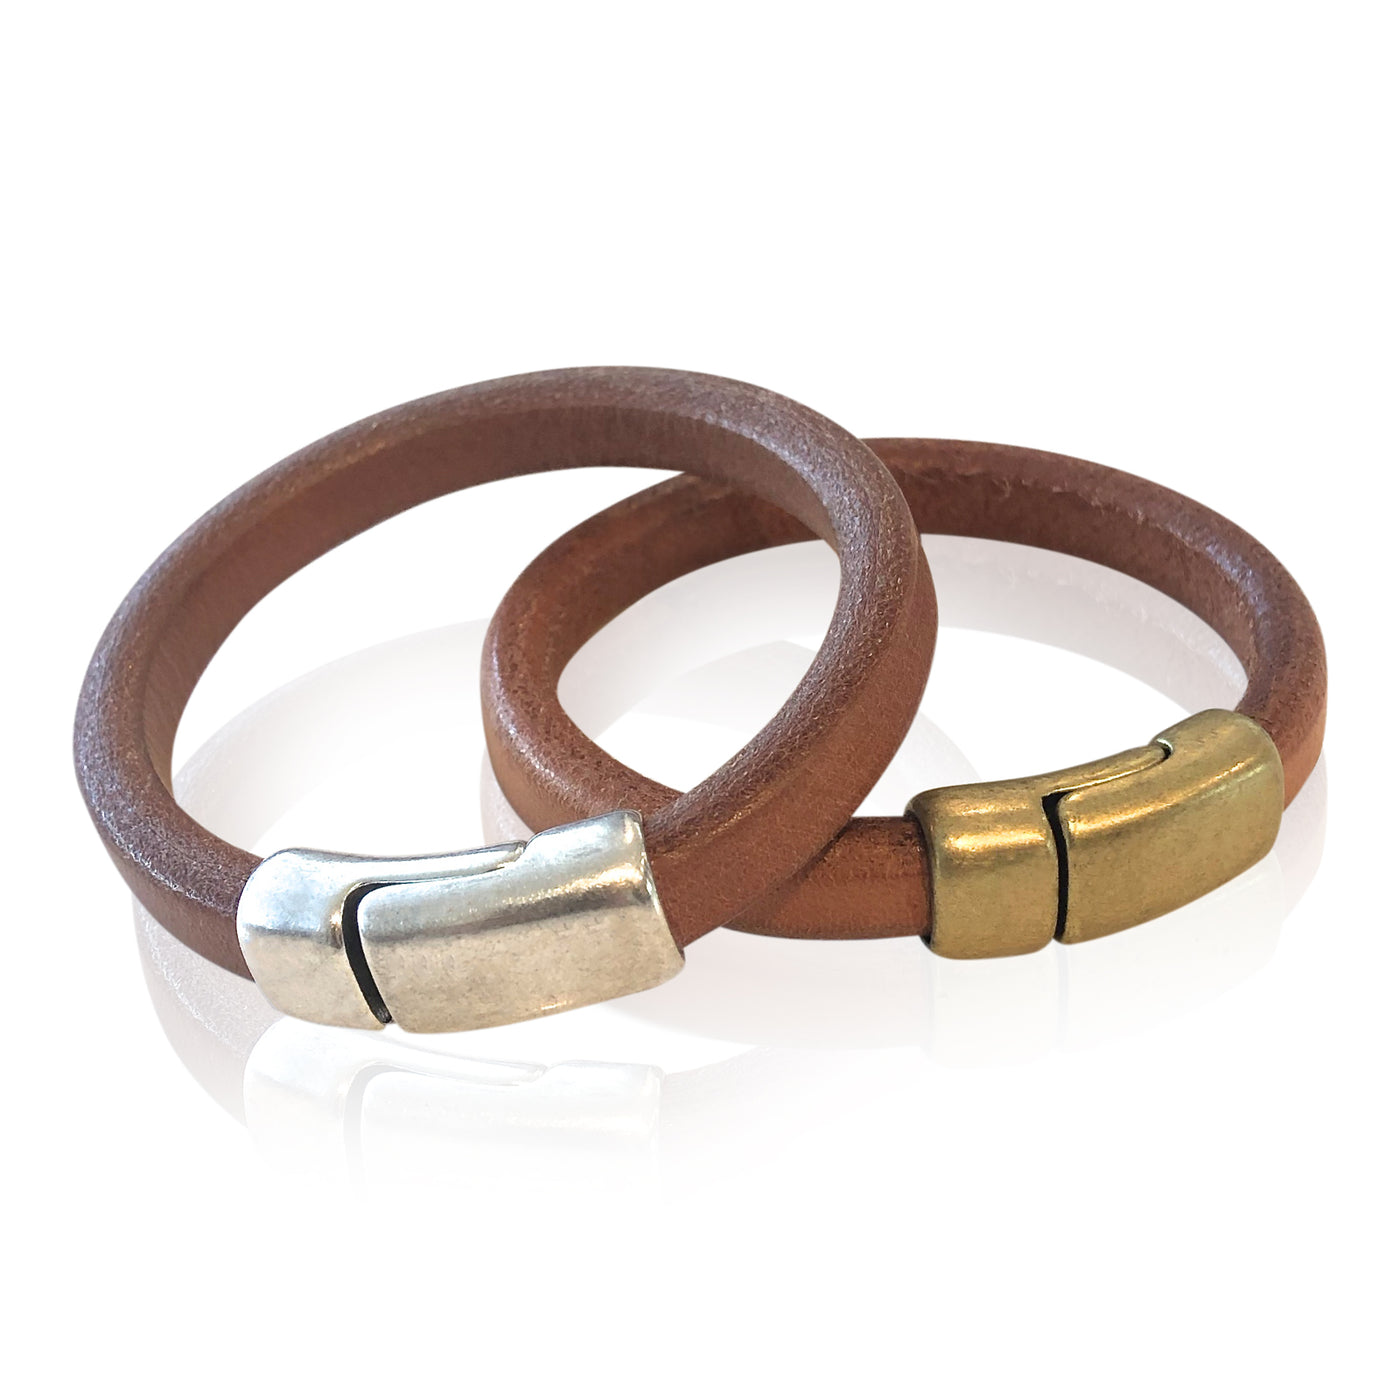 BR3 NAT - Dark Natural Leather Bracelet with Round Magnetic Clasp